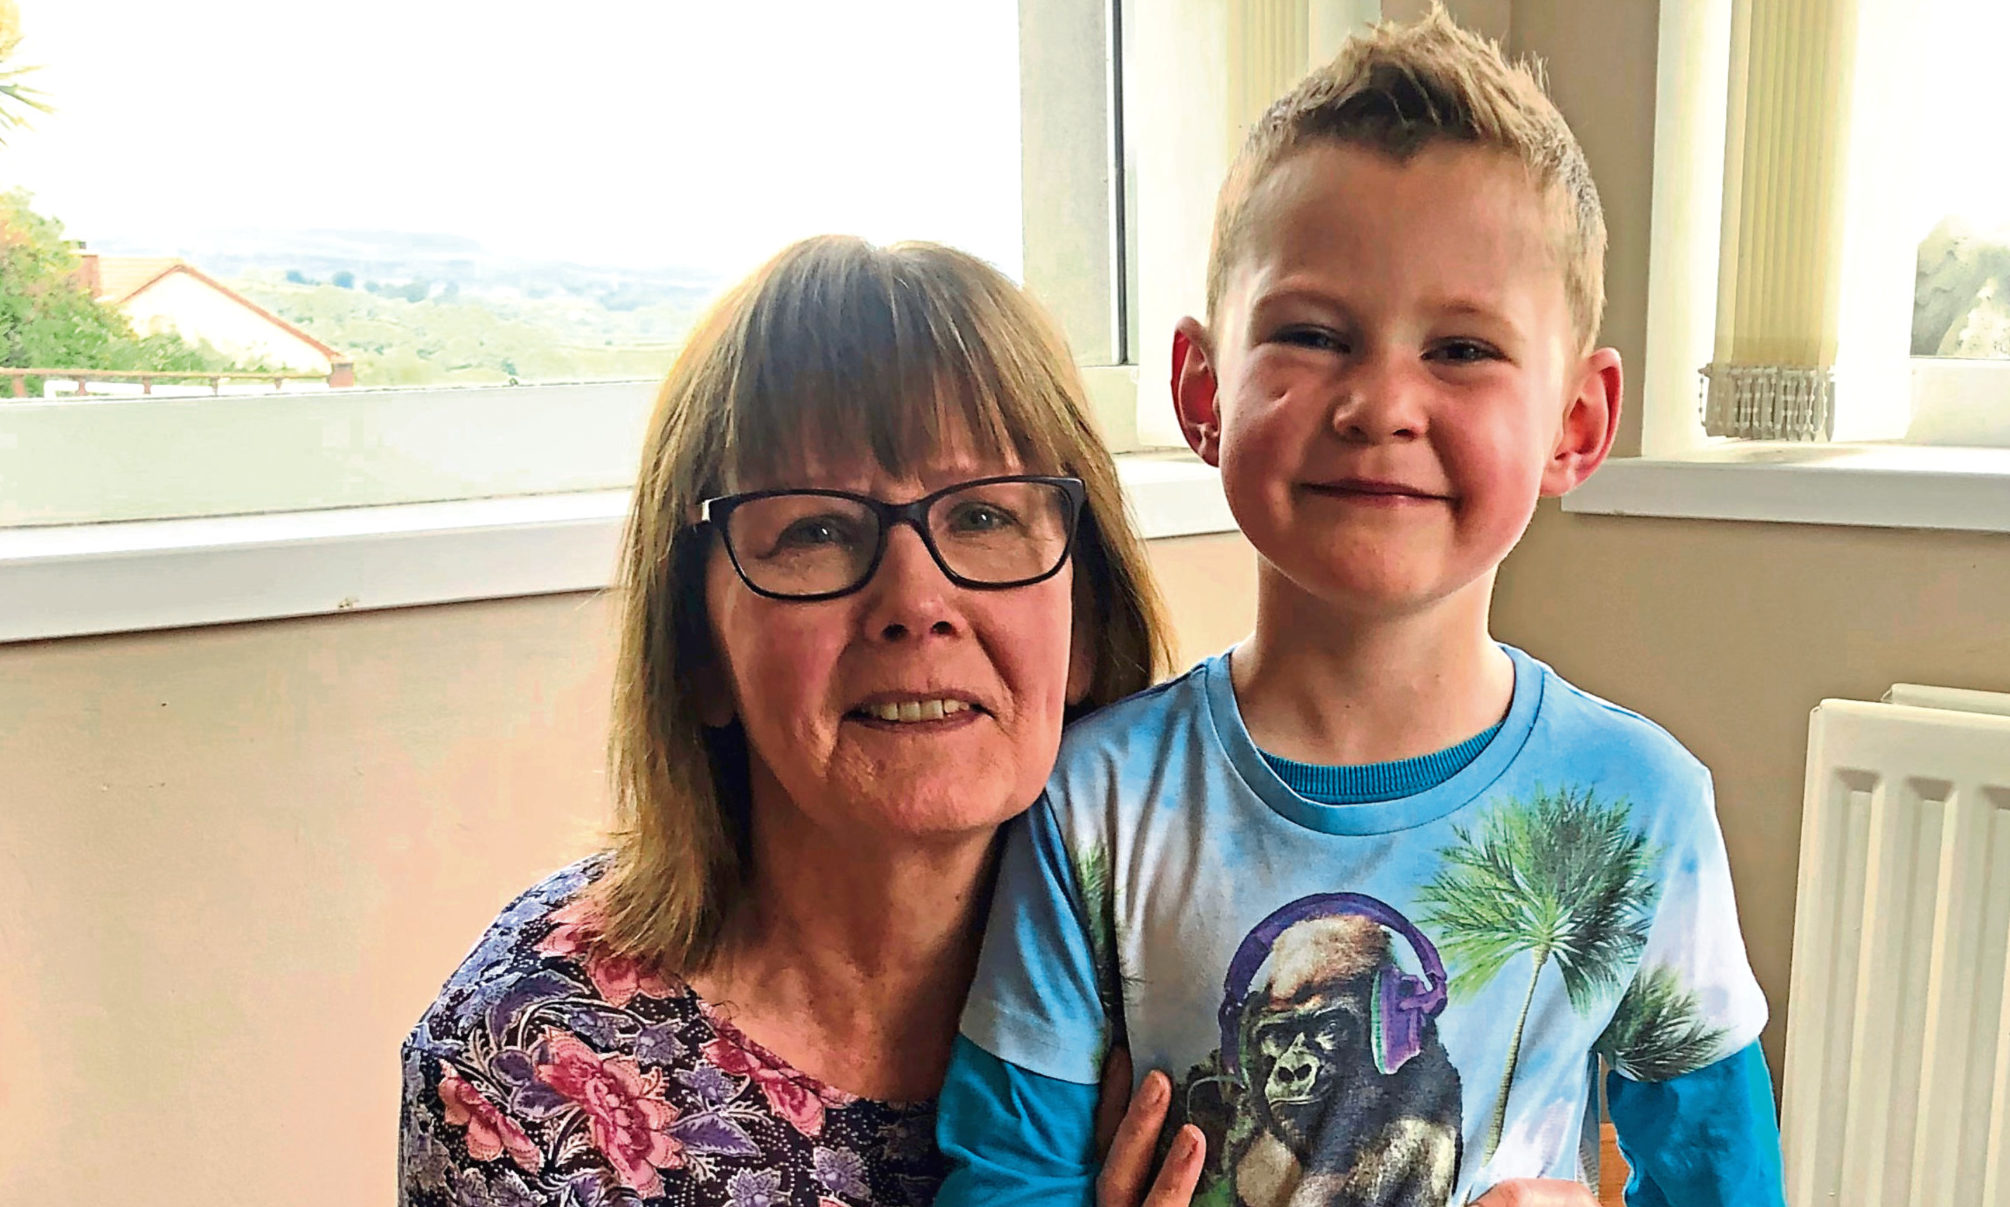 Jacqui Seymour, from Larne in Northern Ireland, with grandson Joe.